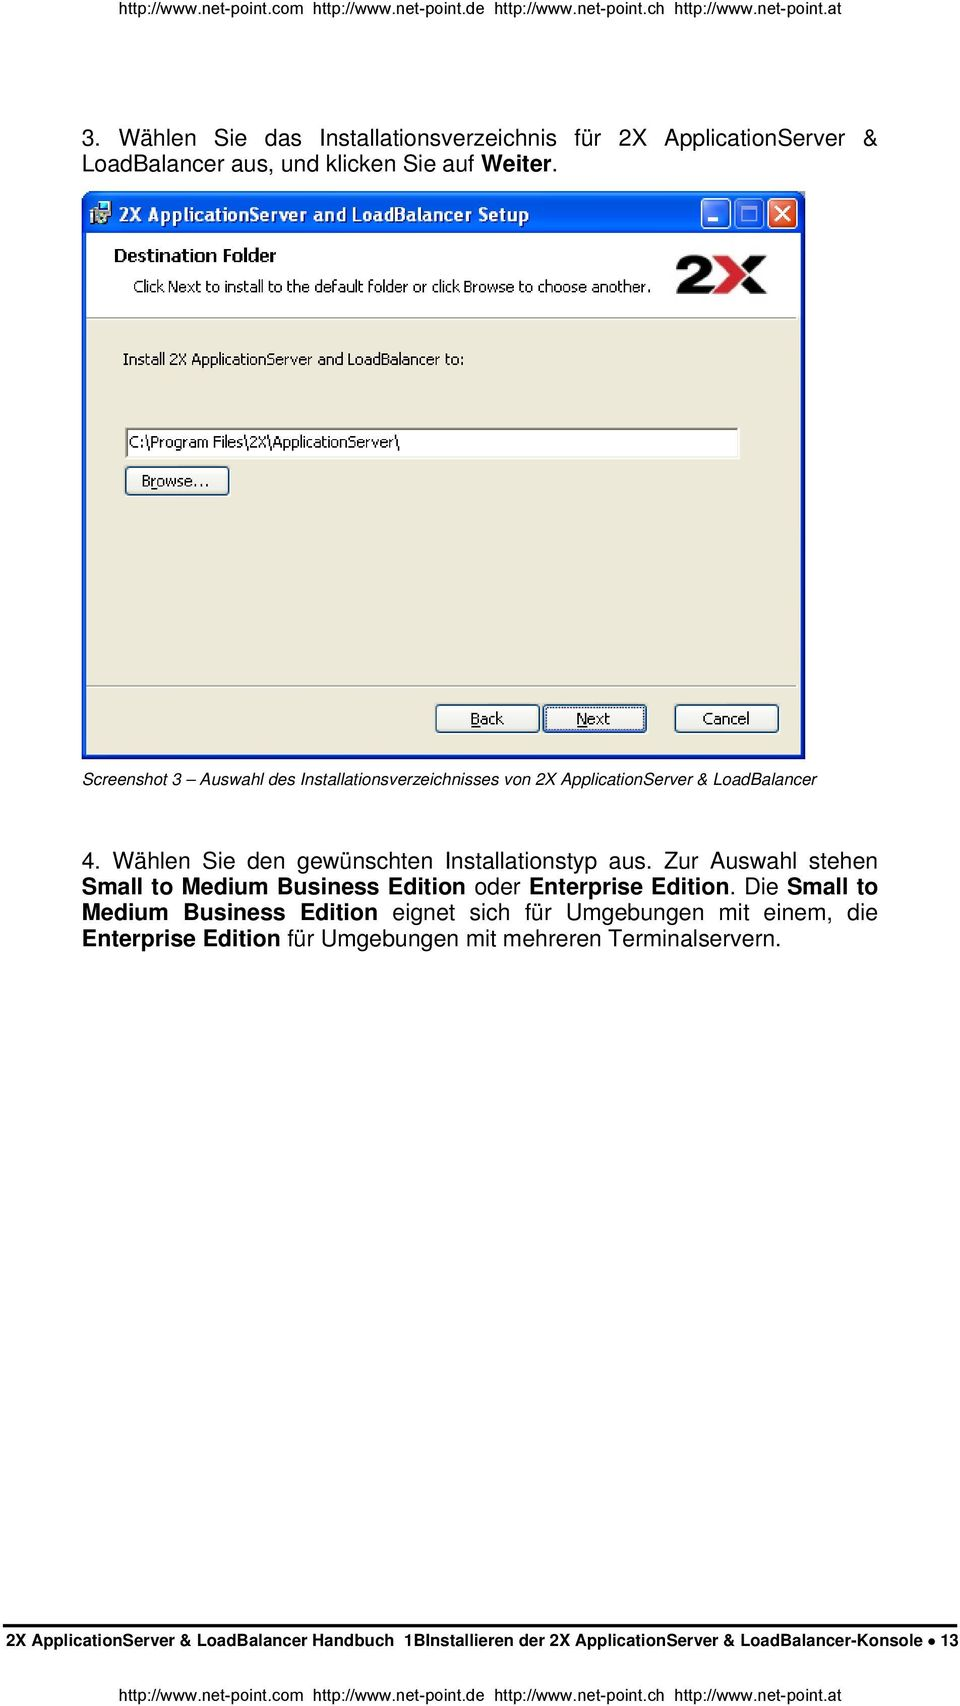 Zur Auswahl stehen Small to Medium Business Edition oder Enterprise Edition.